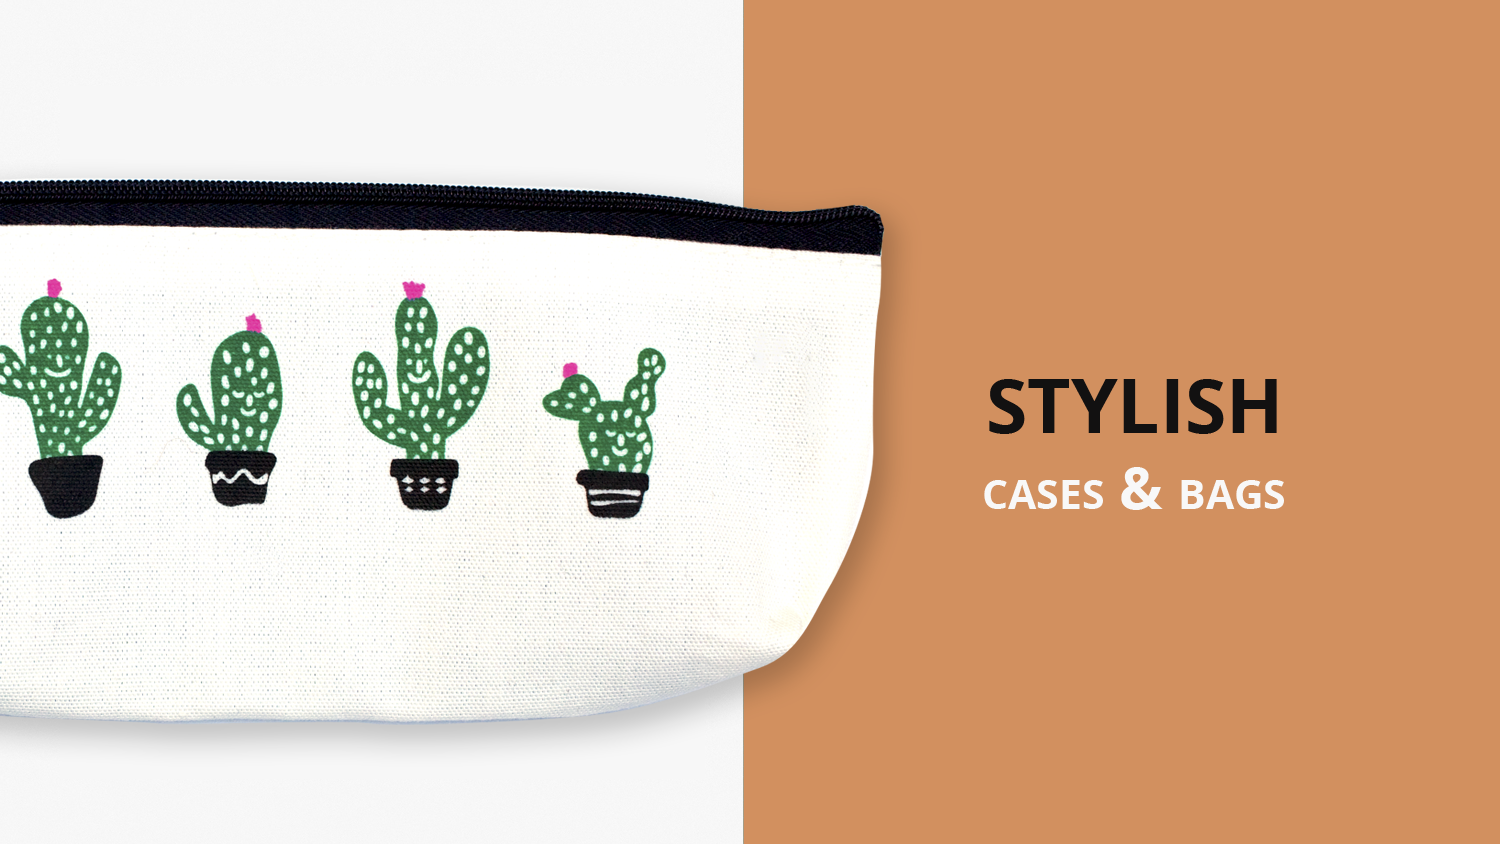 A photo of a white zippered bag with art of potted cacti on it. The image says stylish cases & bags.